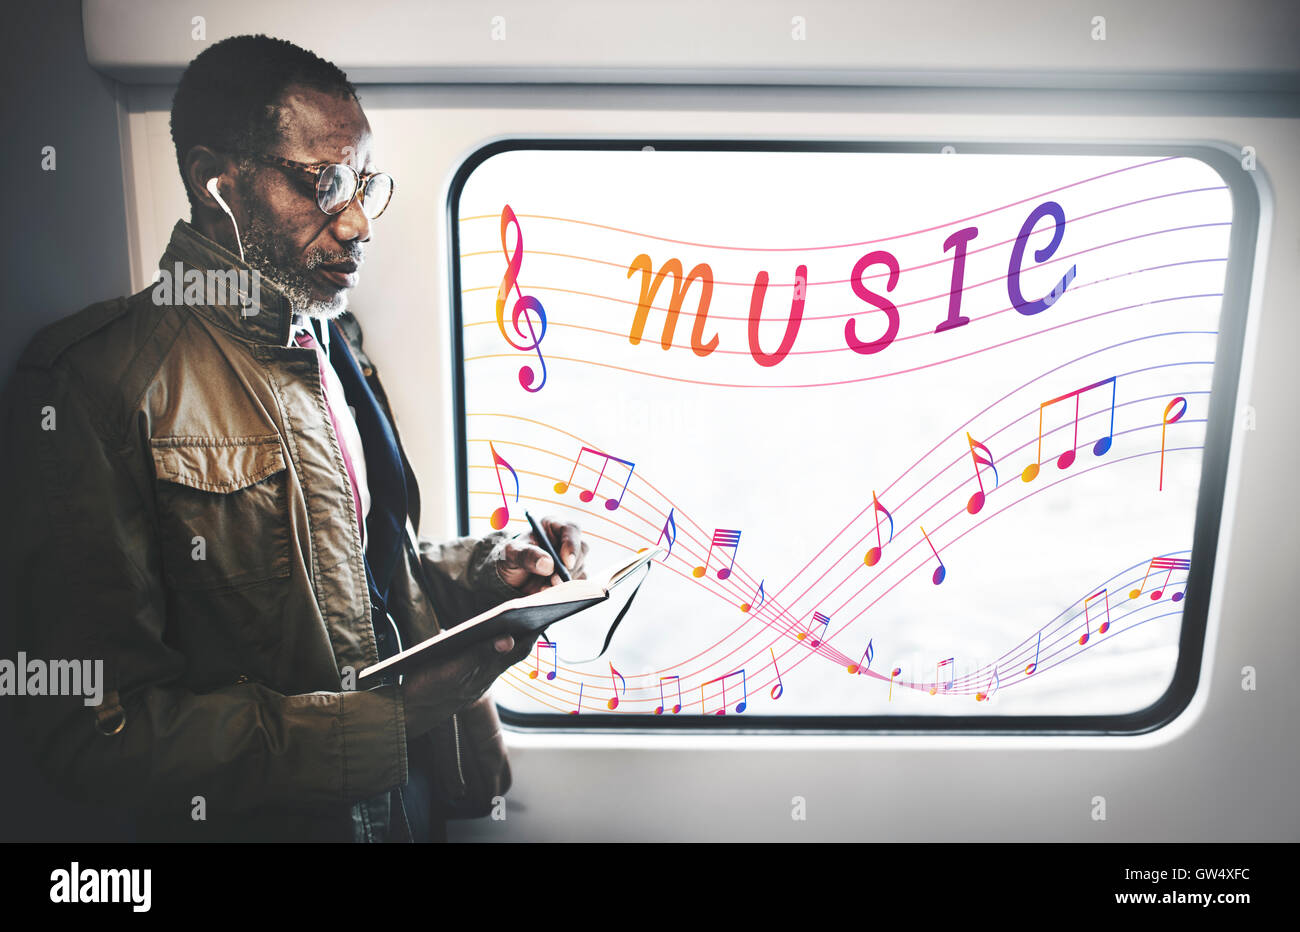 Music Note Art of Sound Instrumental Concept - Stock Image